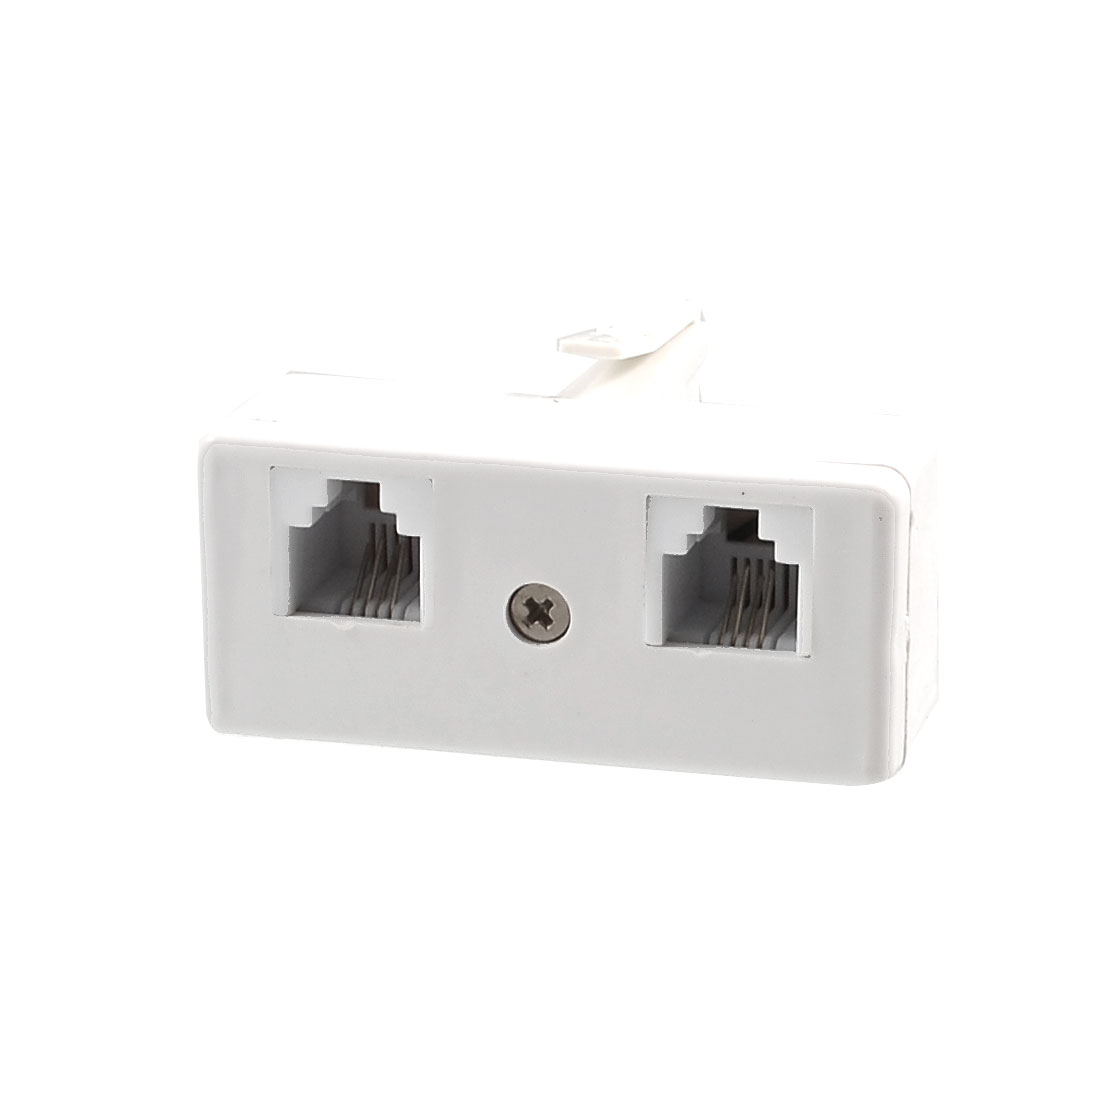 BT 1 Male to 2 Female US RJ11 Socket Adapter White for Telephone